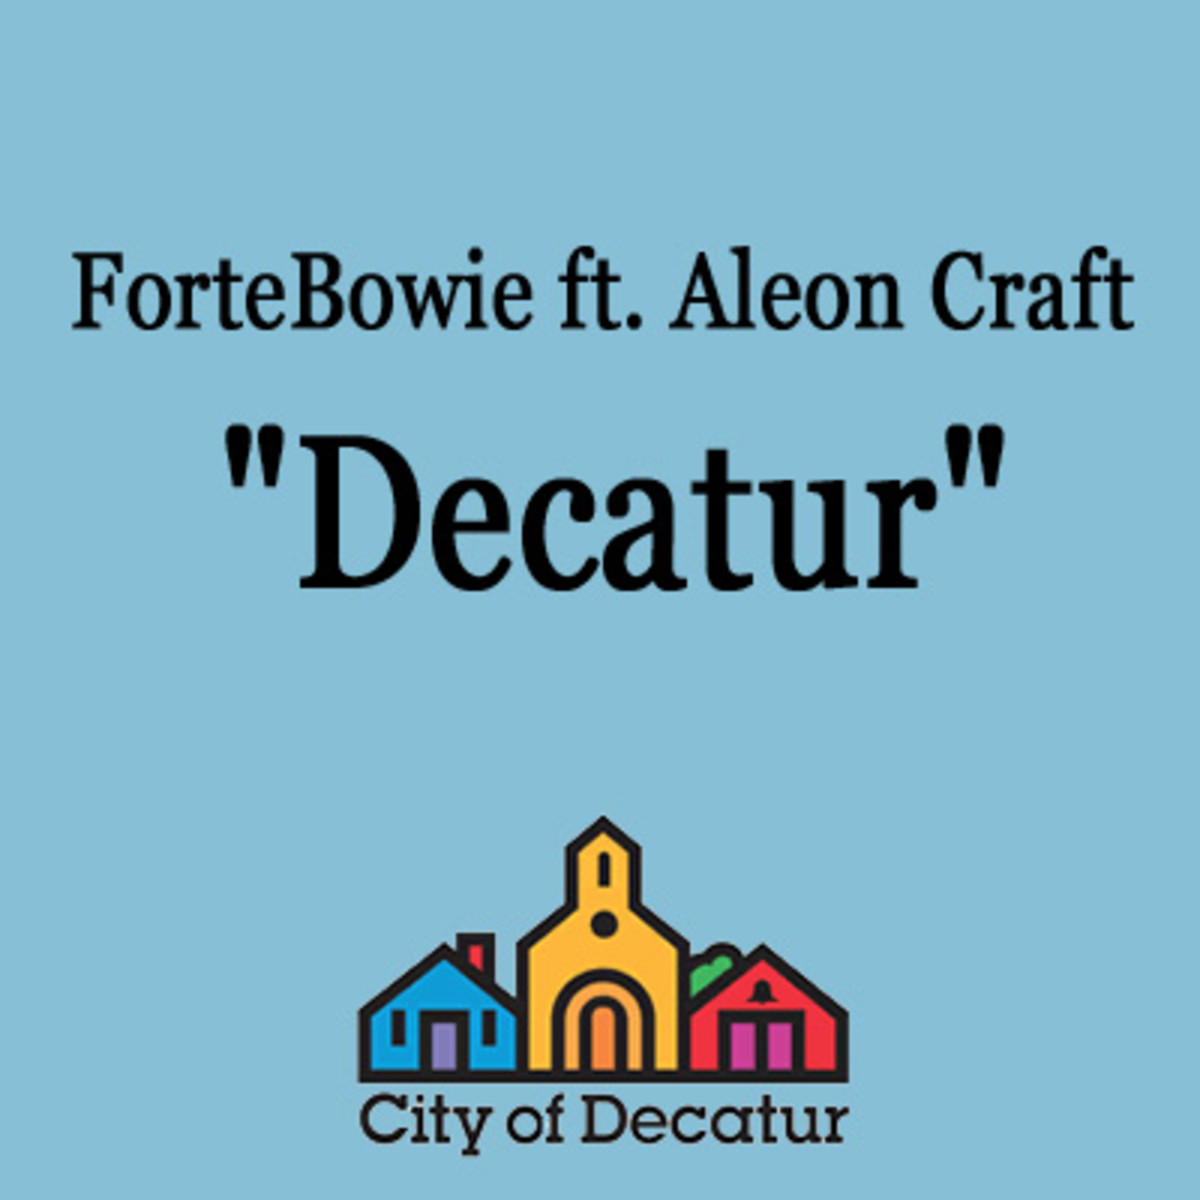 fortebowie-decatur.jpg